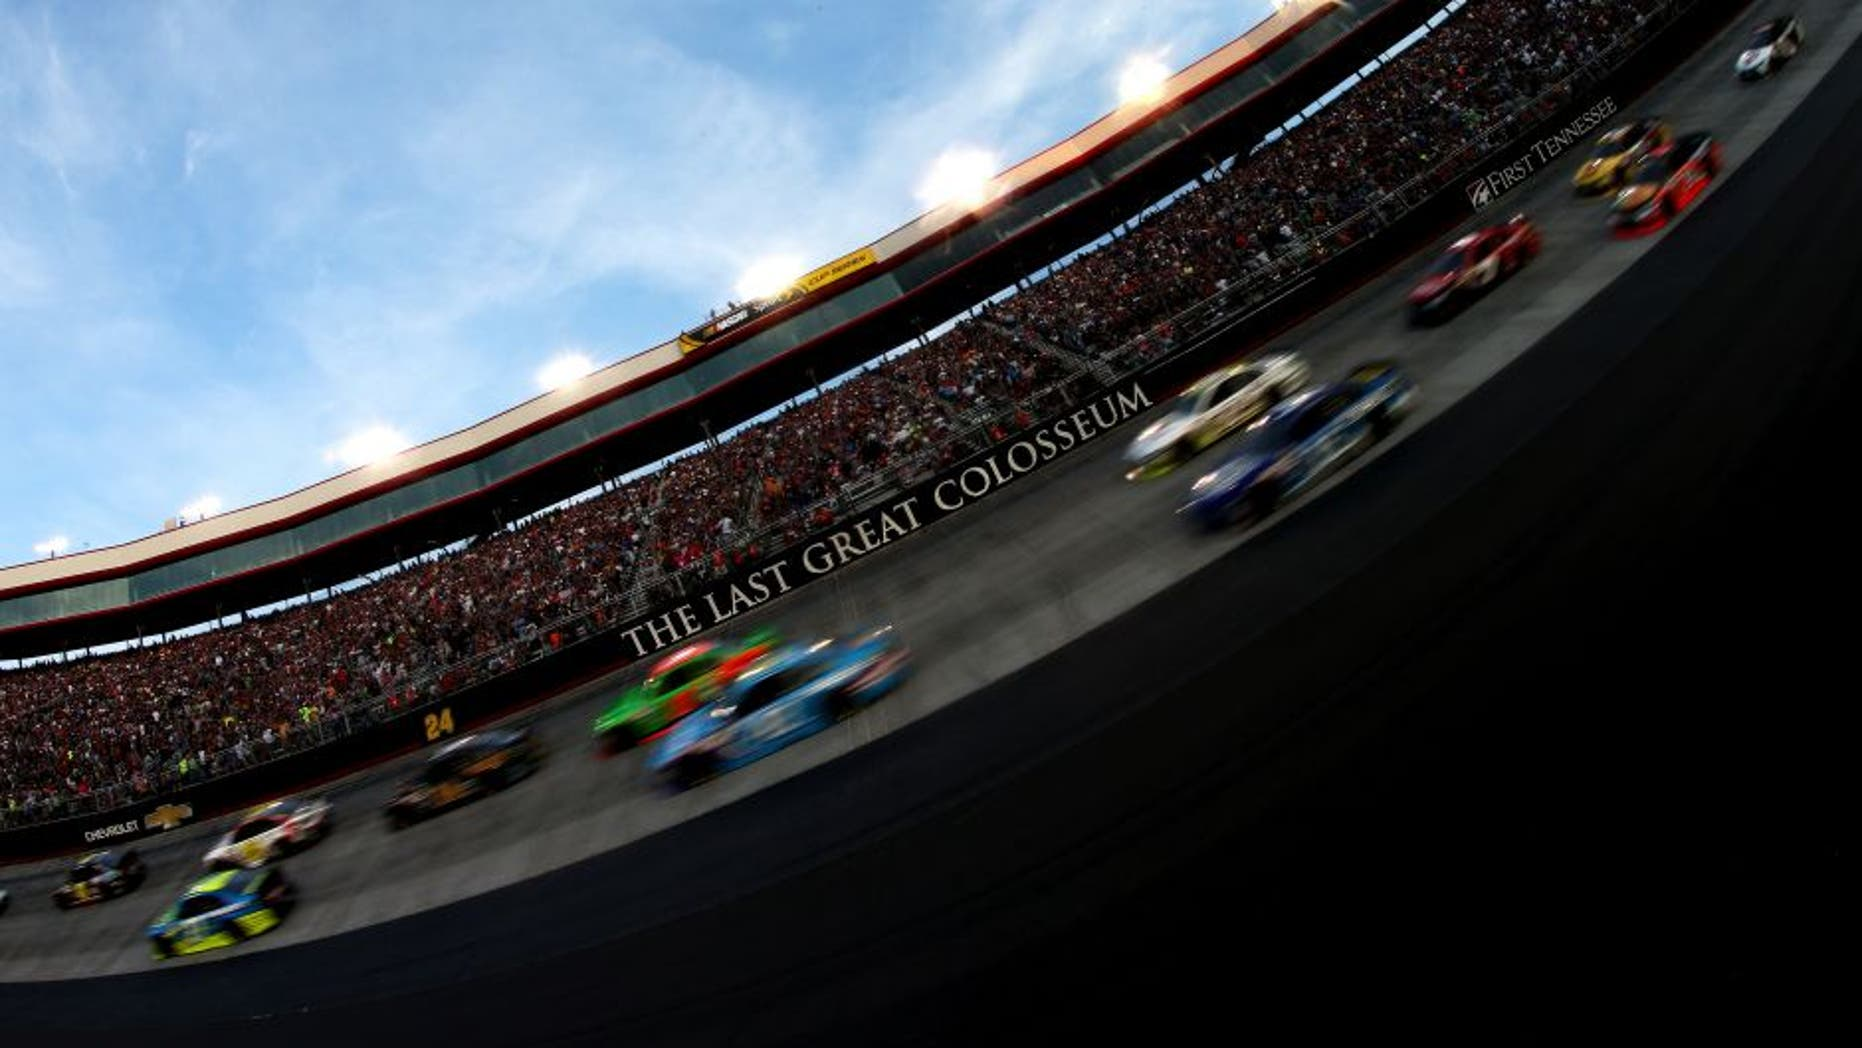 BRISTOL, TN - AUGUST 22: Cars race during the NASCAR Sprint Cup Series IRWIN Tools Night Race at Bristol Motor Speedway on August 22, 2015 in Bristol, Tennessee. (Photo by Sean Gardner/Getty Images)